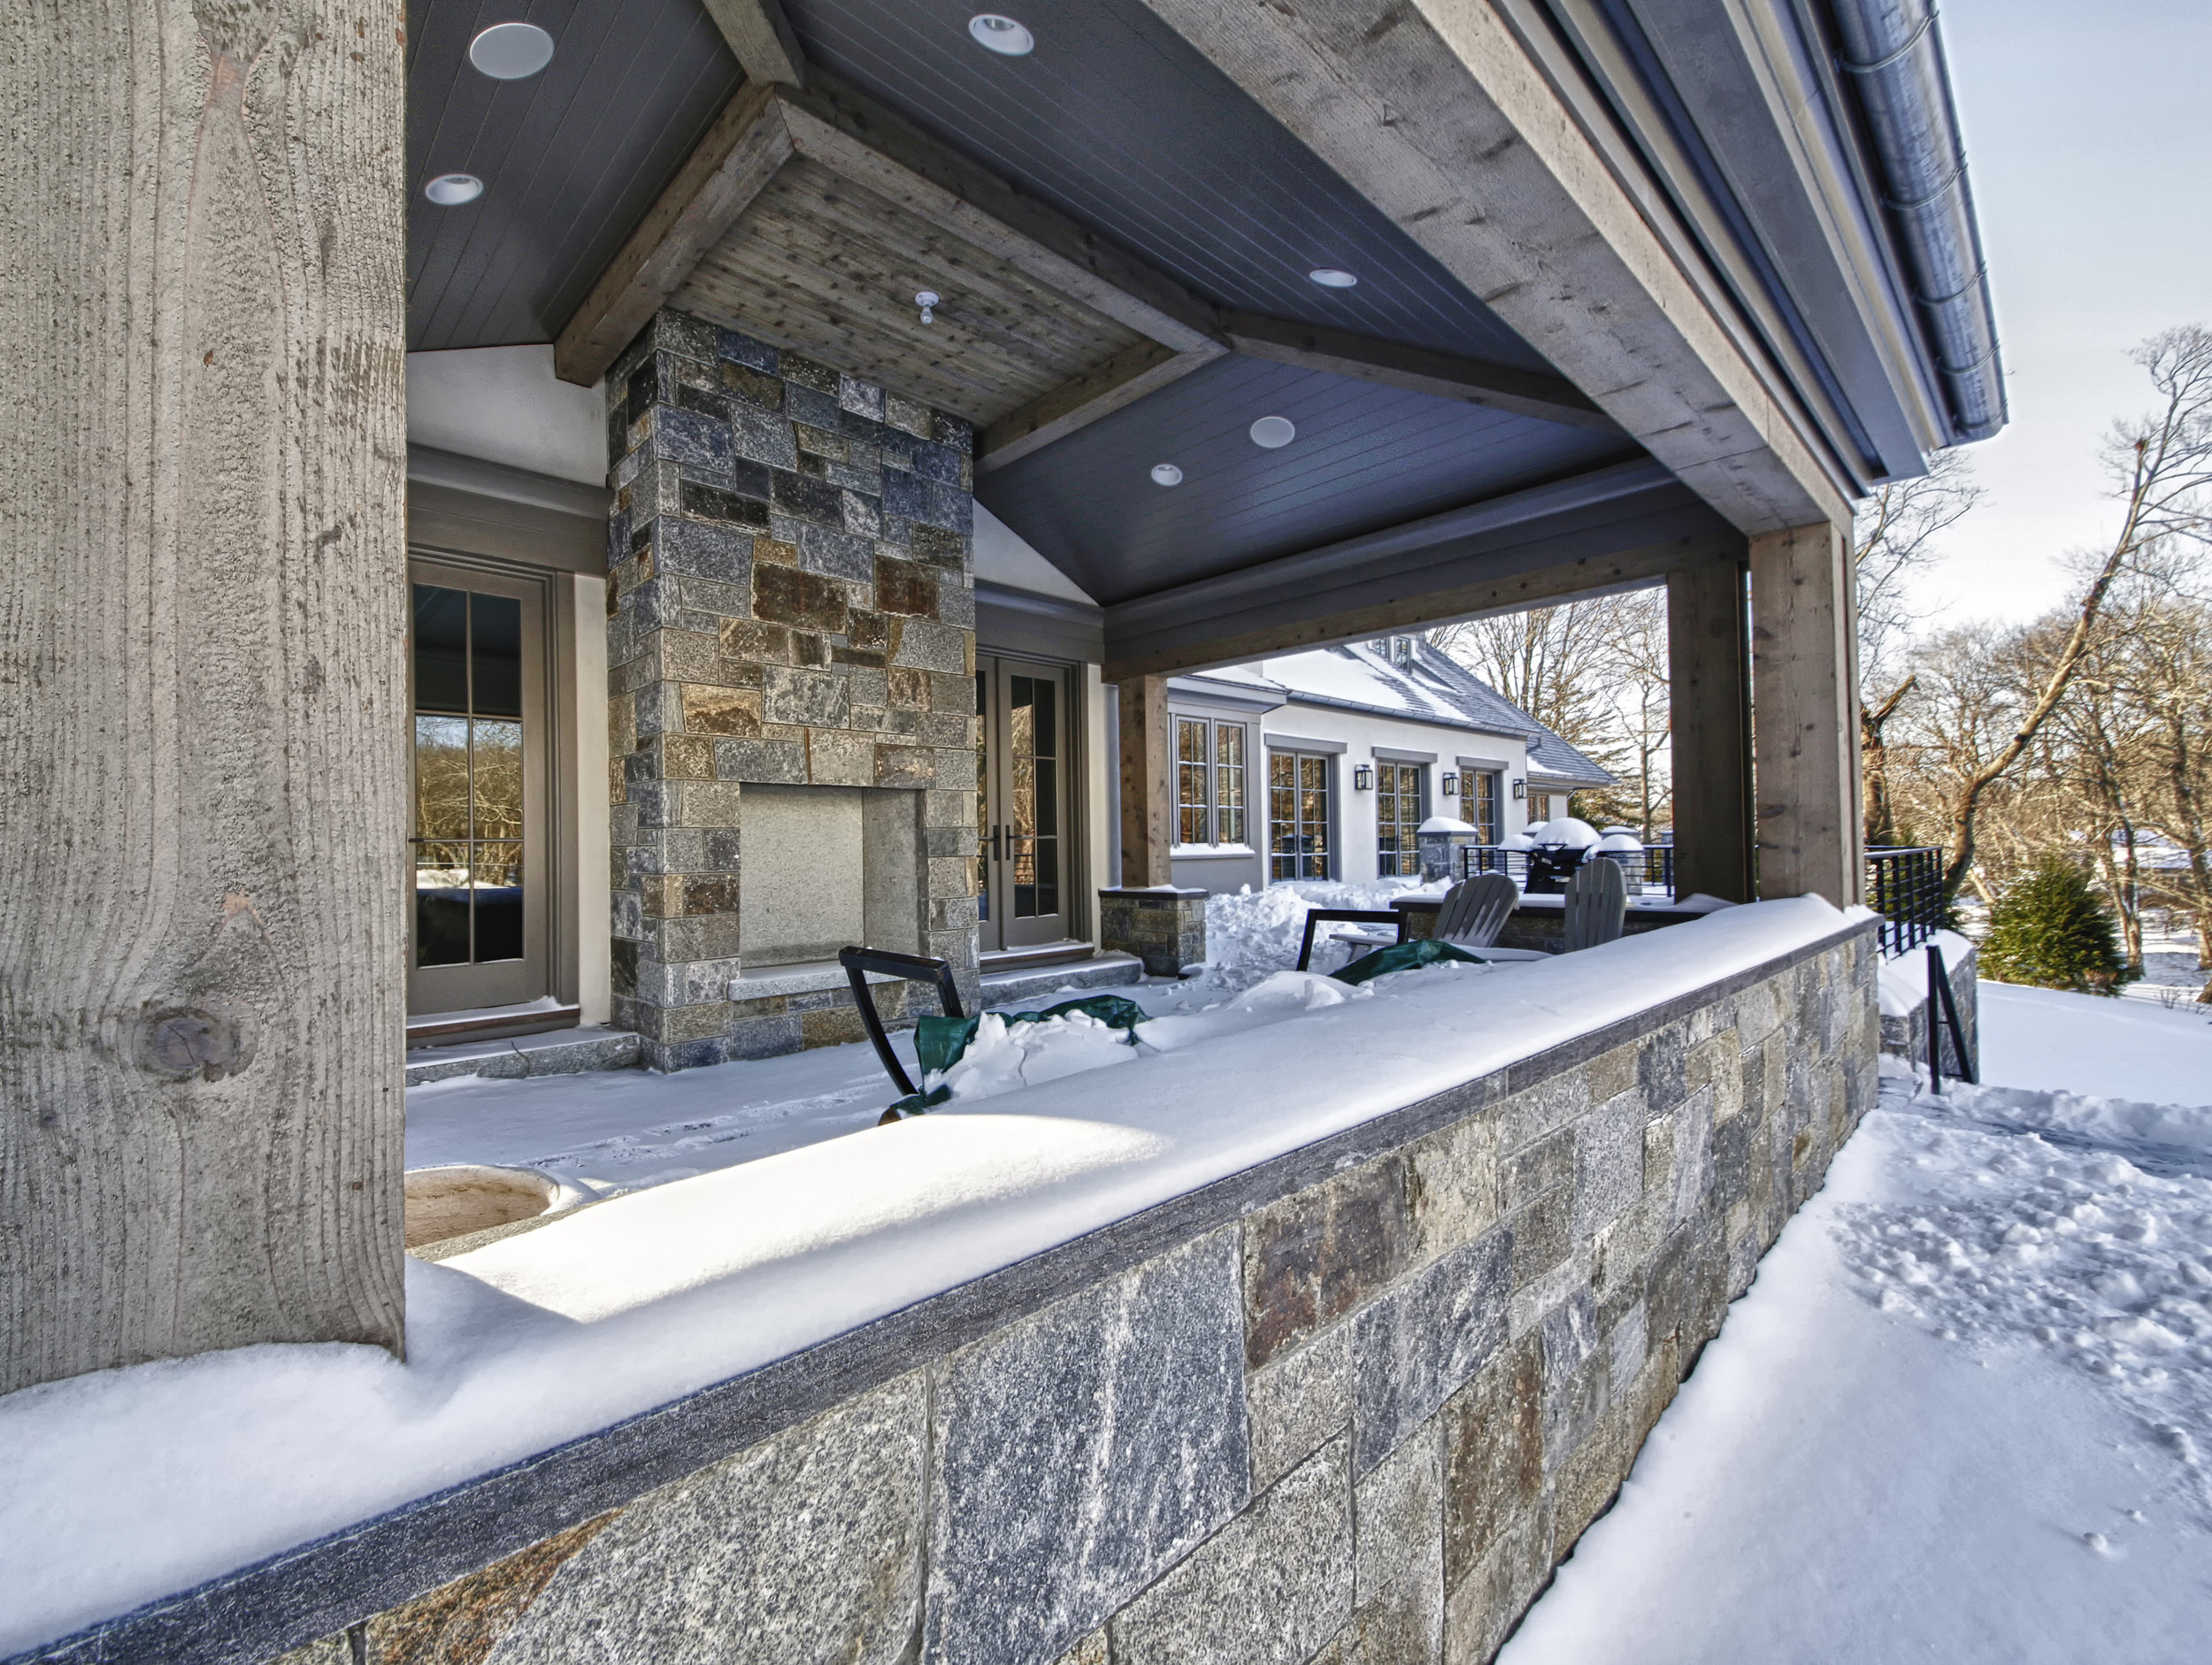 MATERIALS USED: A CUSTOM GAULT NATURAL VENEER STONE BLEND: CLAPBOARD HILL BLEND